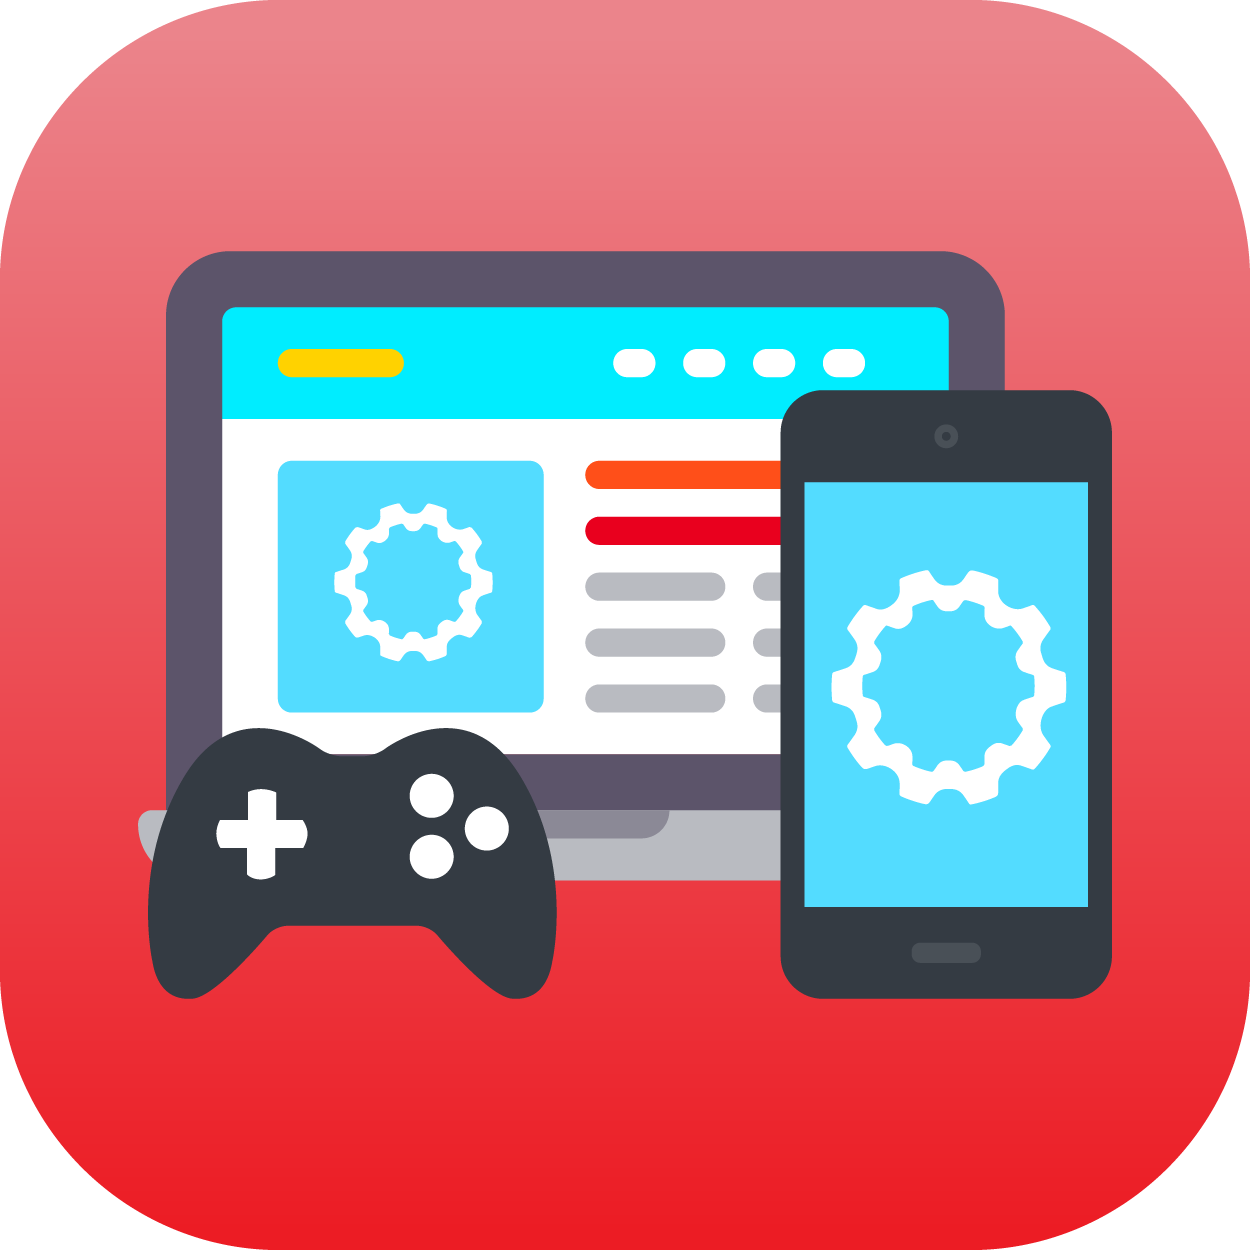 Web, Mobile, and Game Development